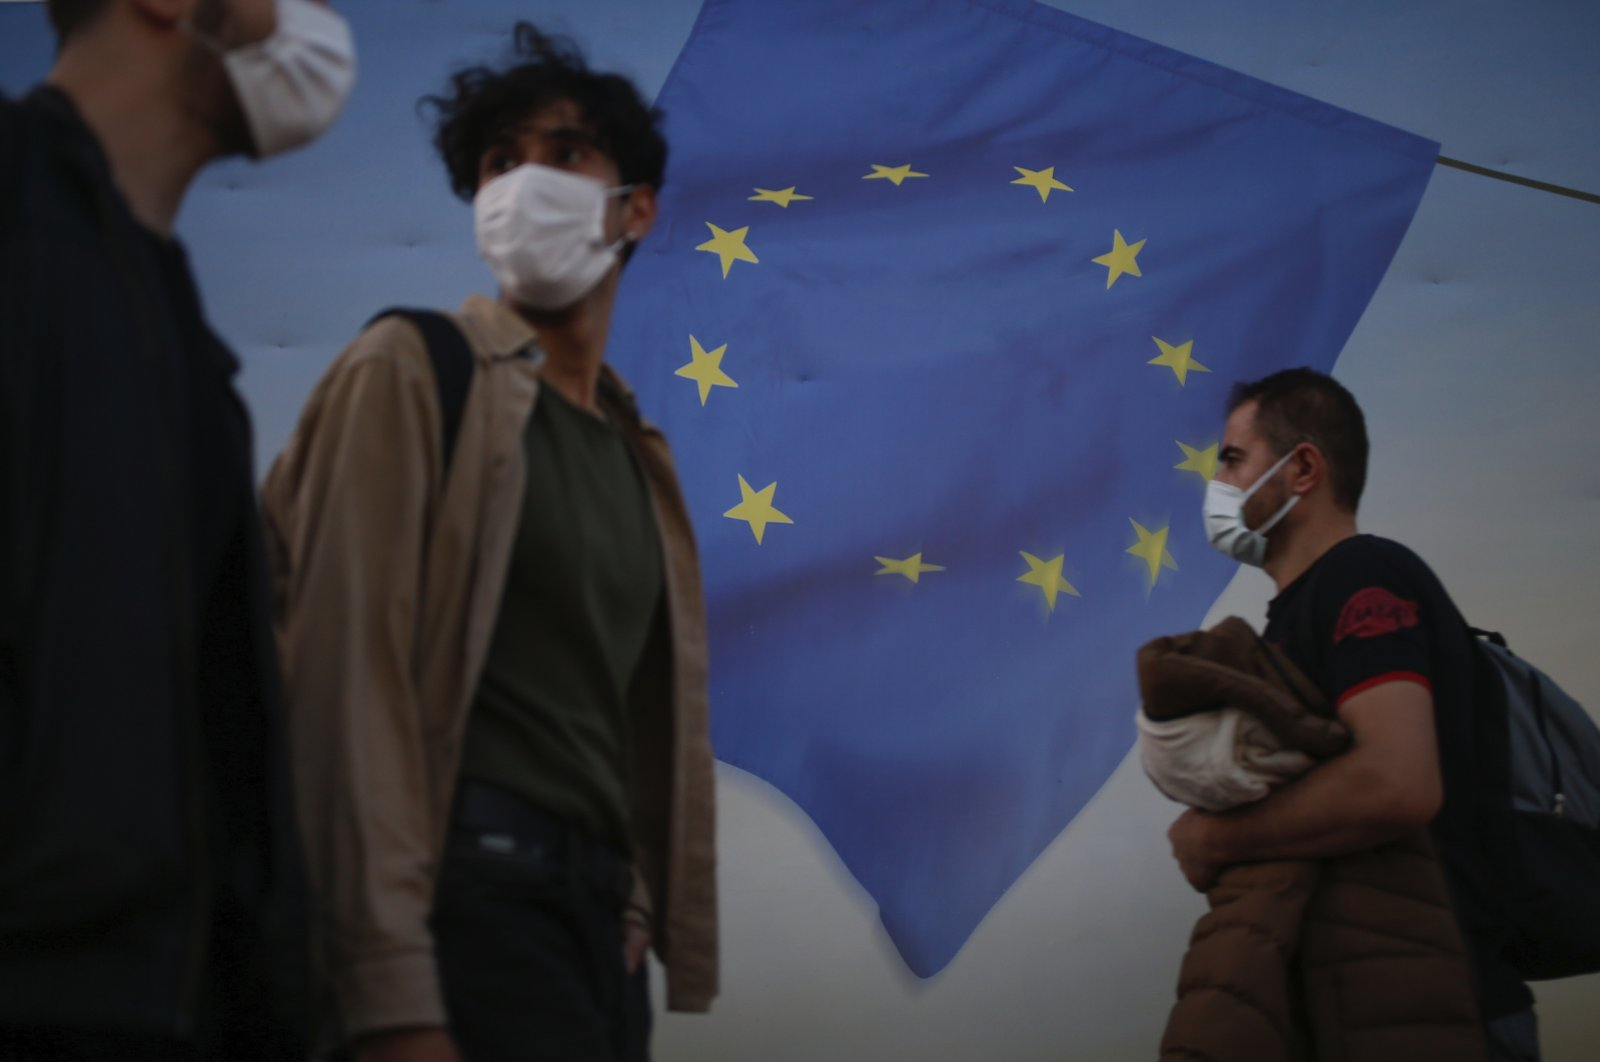 Backdropped by a poster with a European Union flag, people, wearing masks to help protect against the spread of coronavirus, walk in Istanbul, Friday, Oct. 2, 2020. (AP Photo)